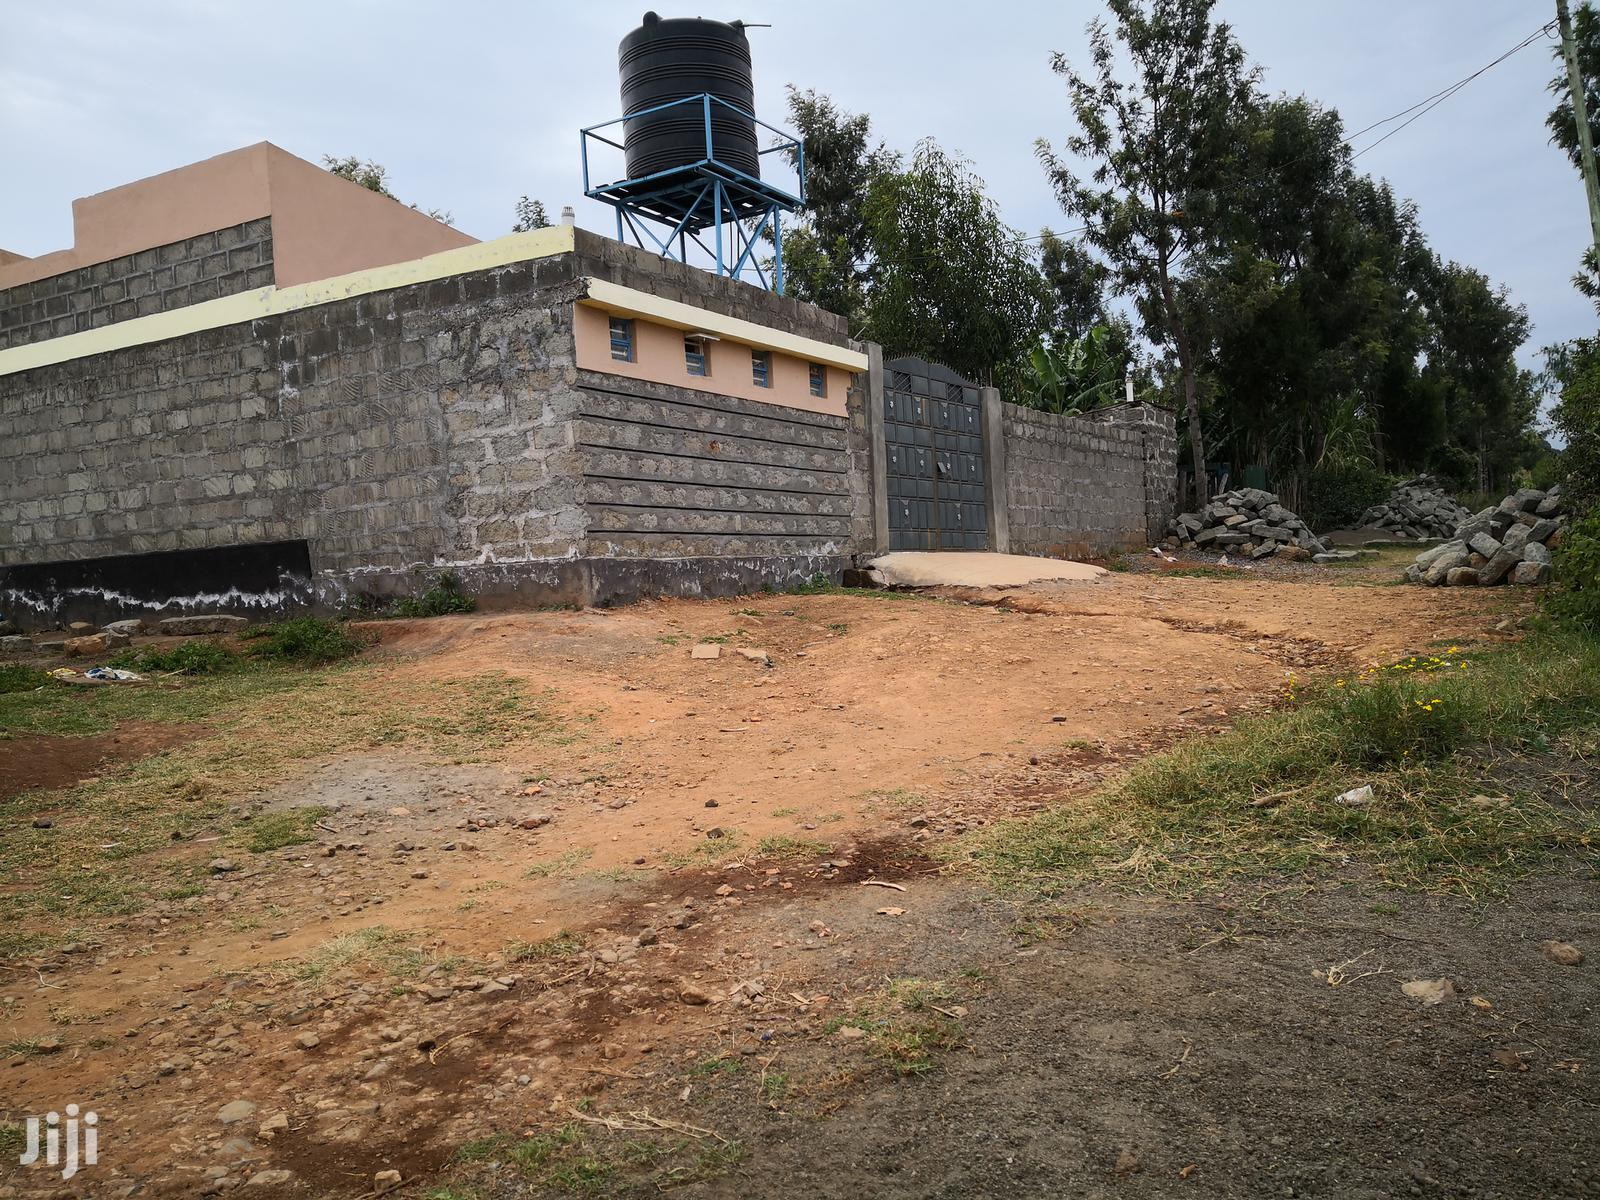 50x100 Prime Plot for Sale in Gilgil Nakuru County.